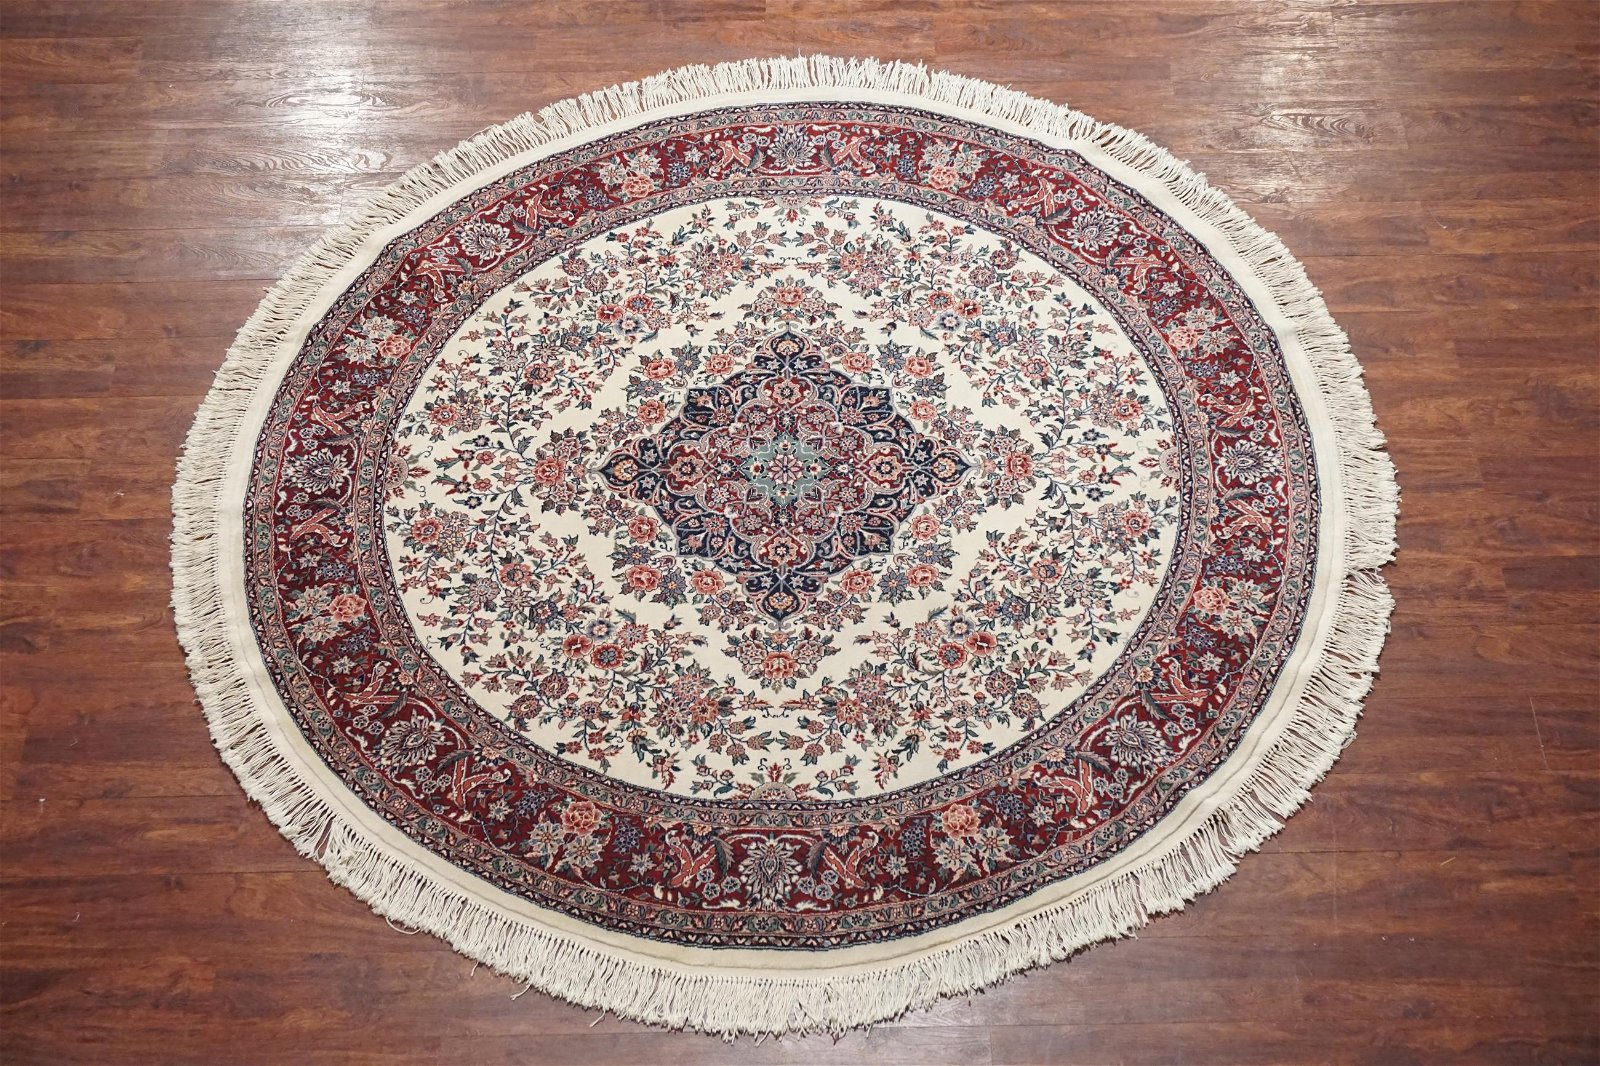 Ivory 7X7 Fine Round Area Rug Hand-Knotted Wool Carpet